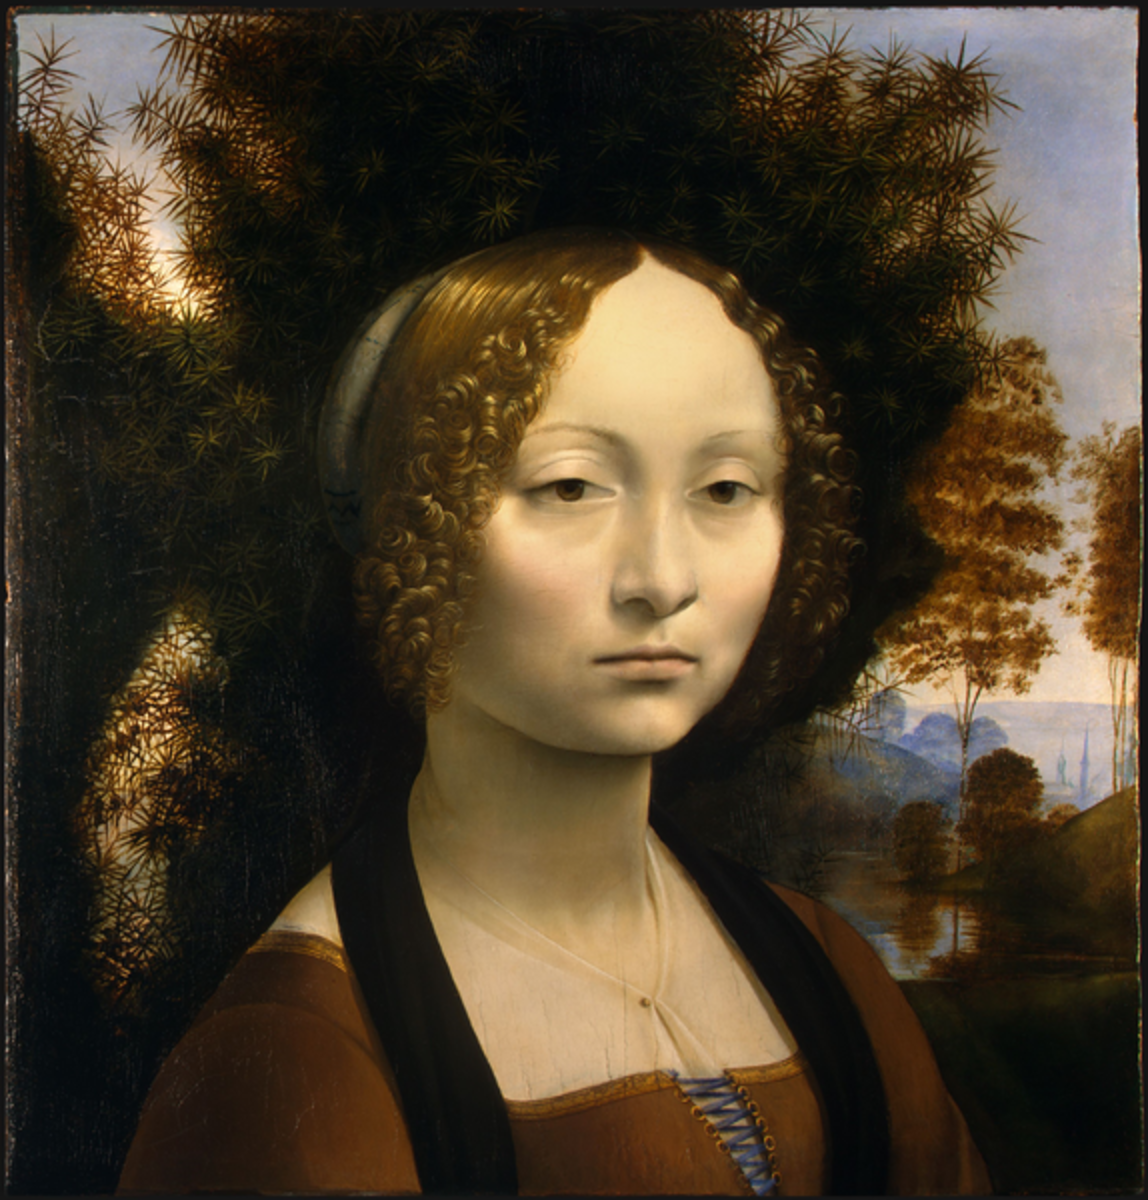 Leonardo da Vinci: Portraits Before Mona Lisa